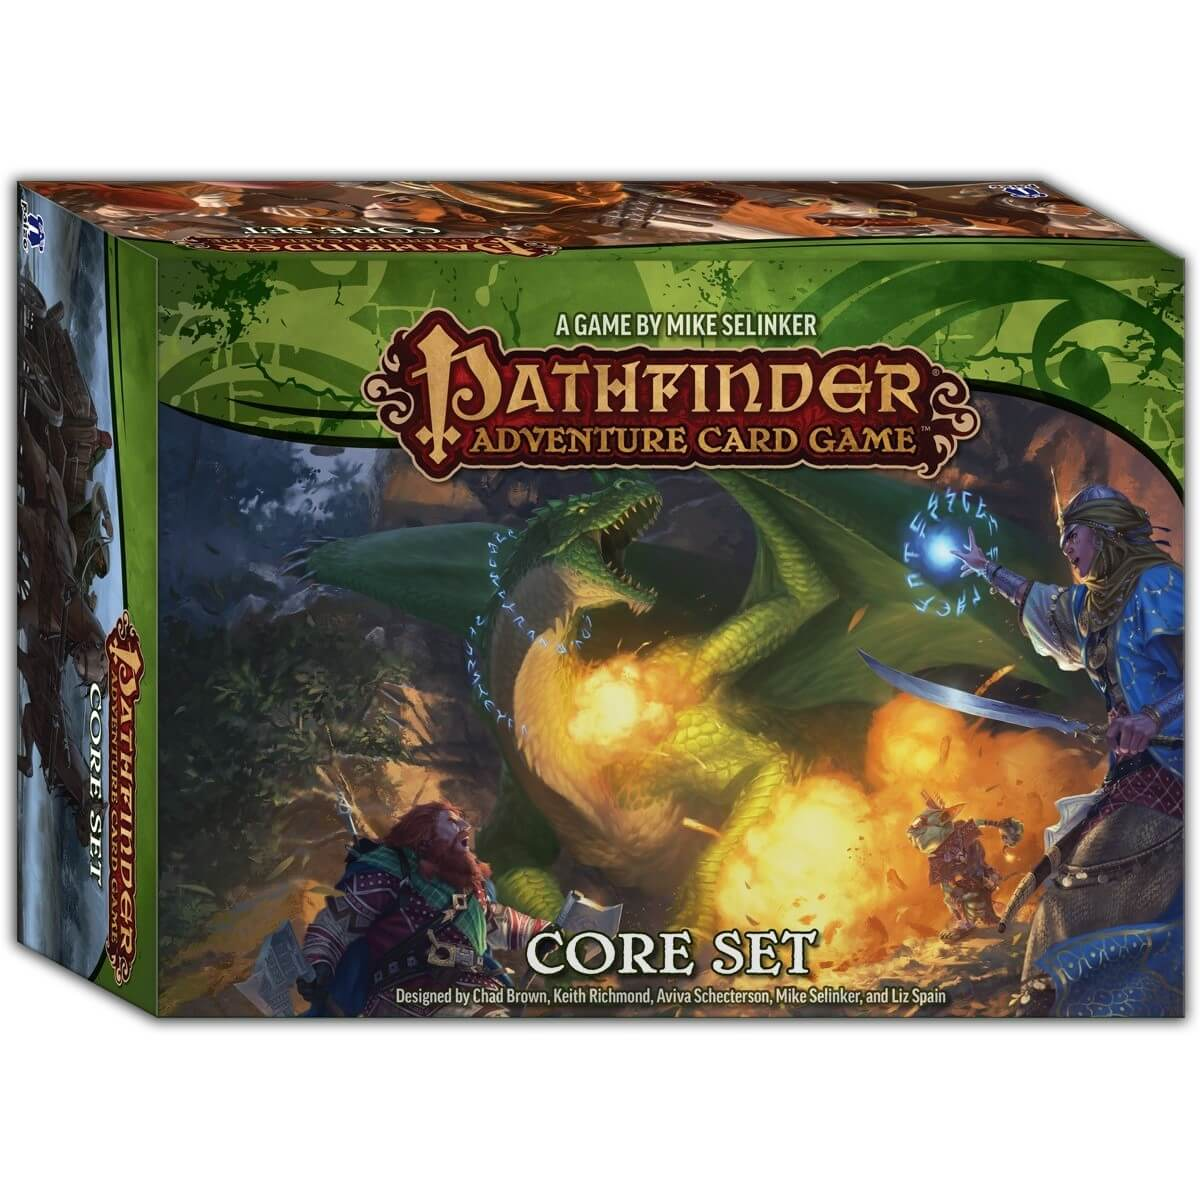 Box image for Pathfinder card game card set